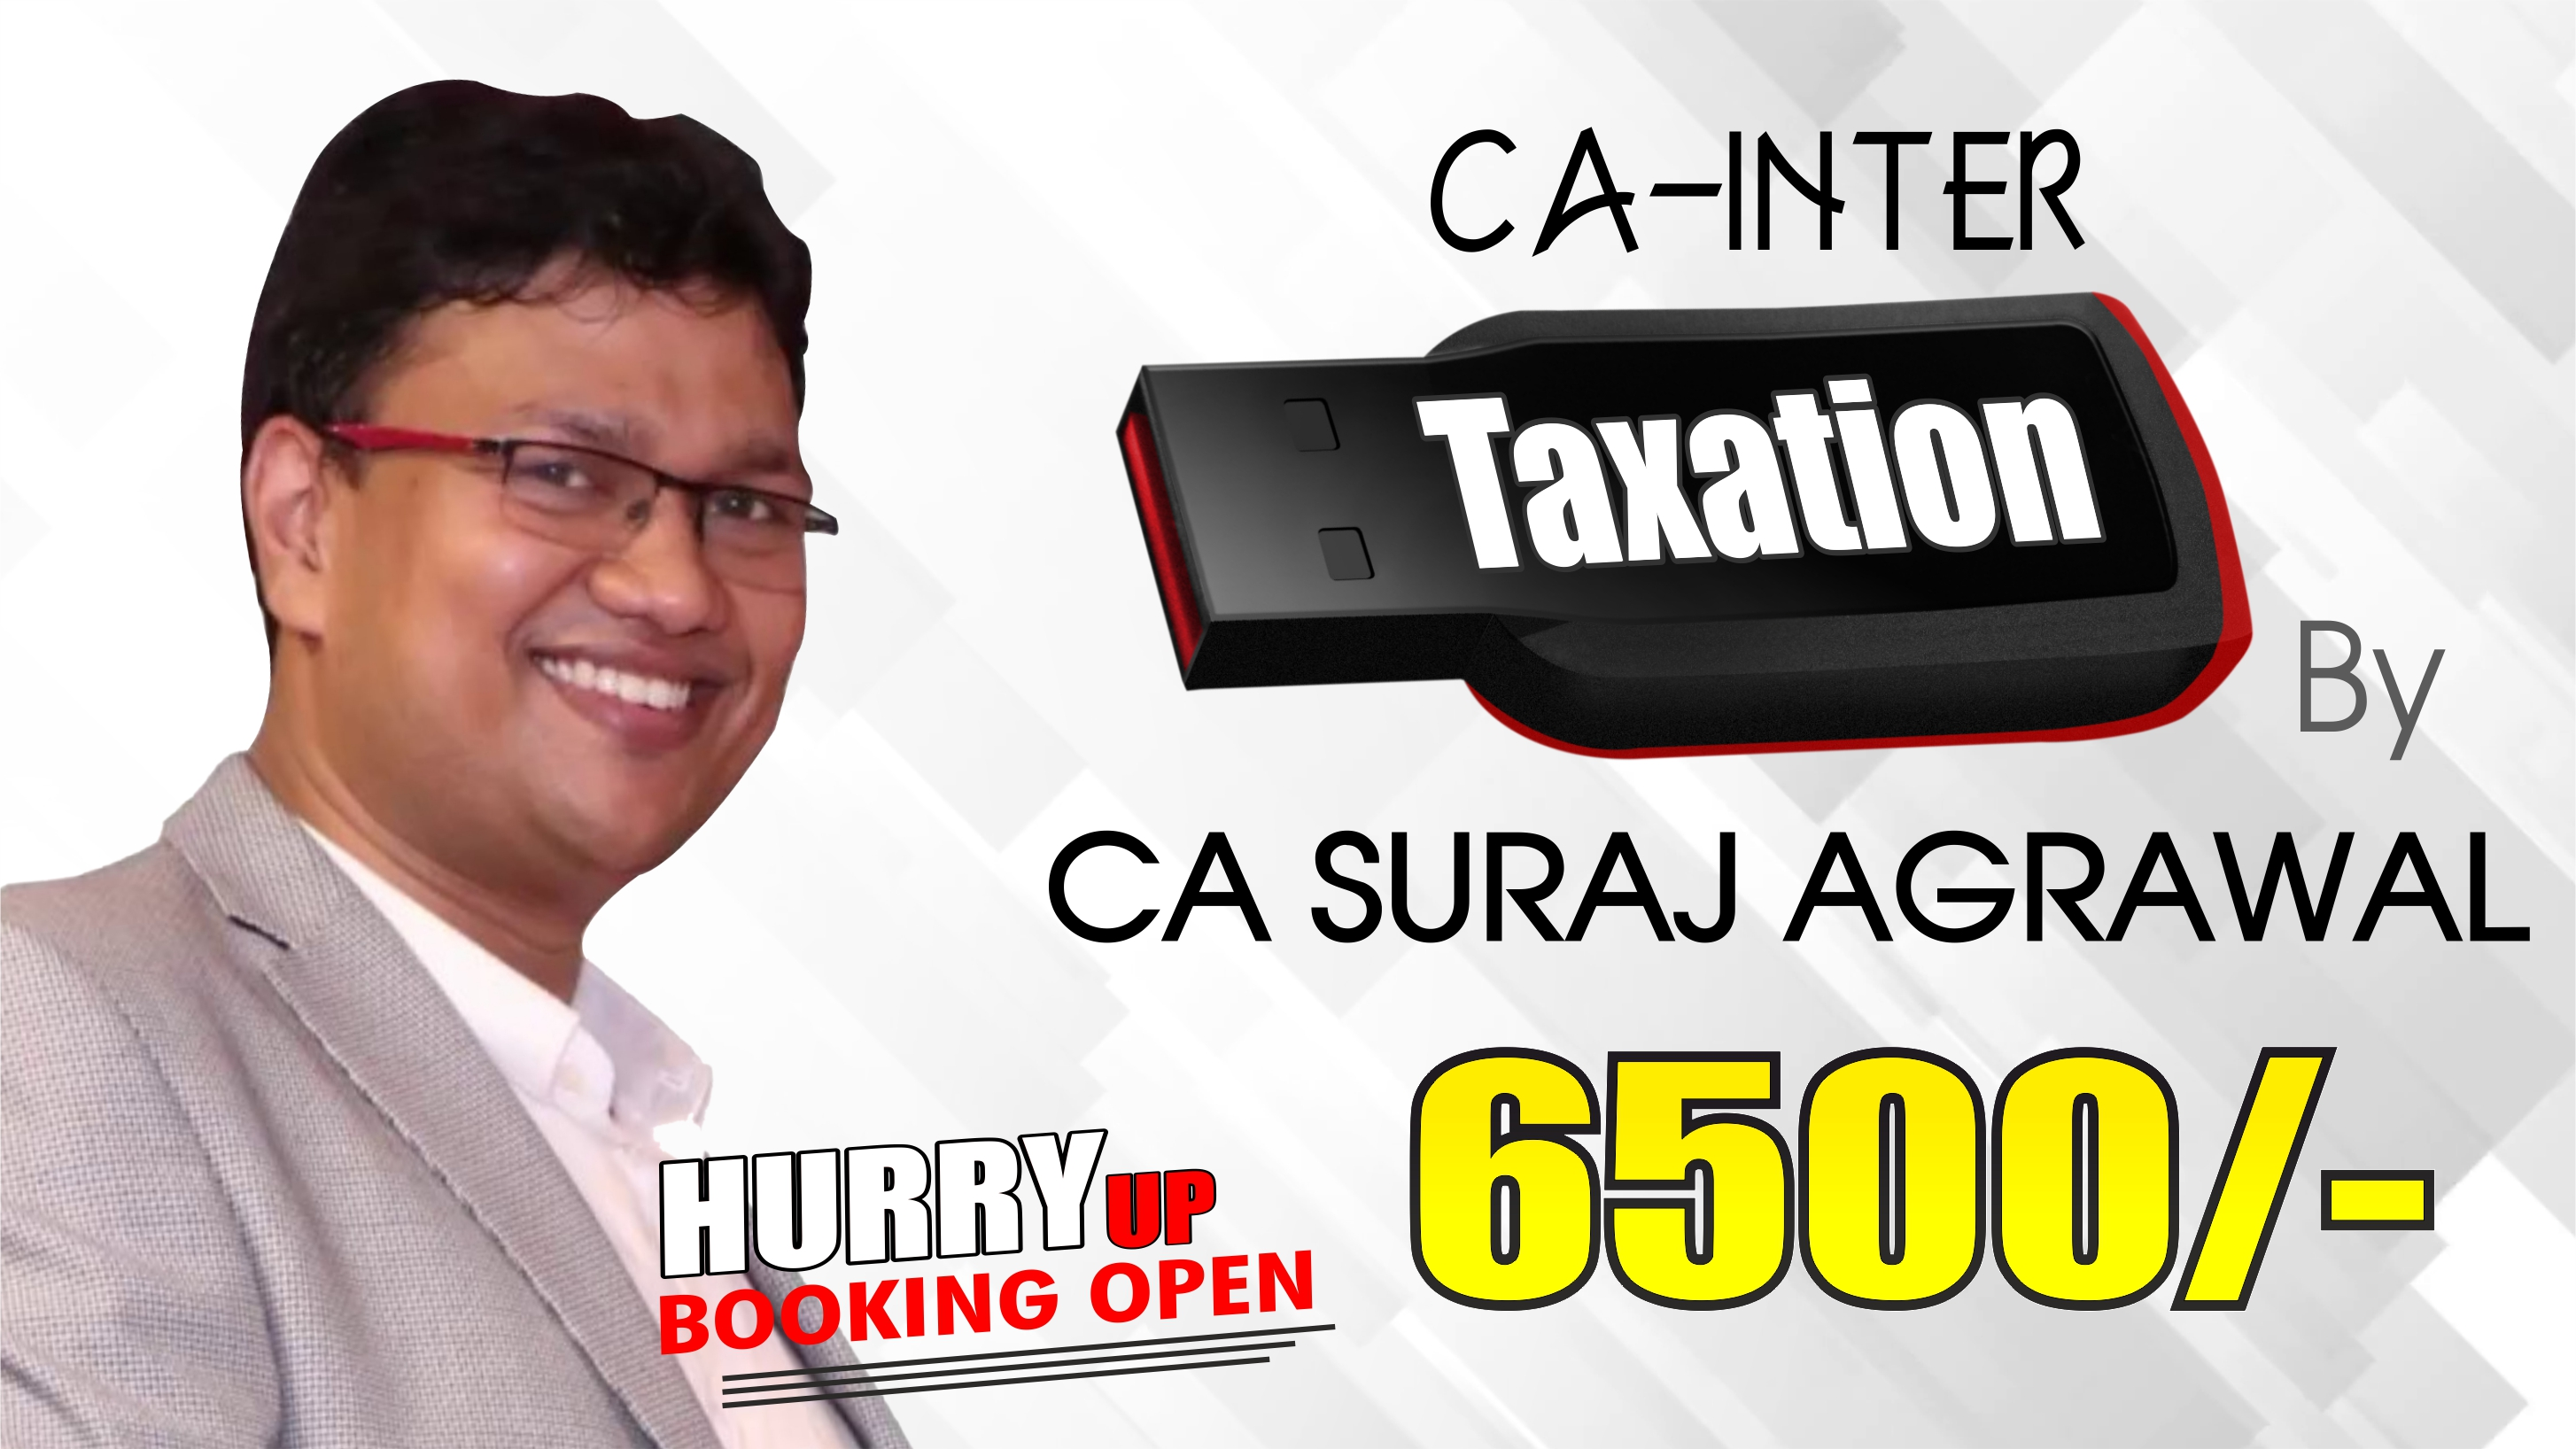 CA INTERMEDIATE GROUP I – TAXATION (NEW COURSE) BY CA SURAJ AGRAWAL For May 20 & Onwards | Full HD Video + HQ Sound